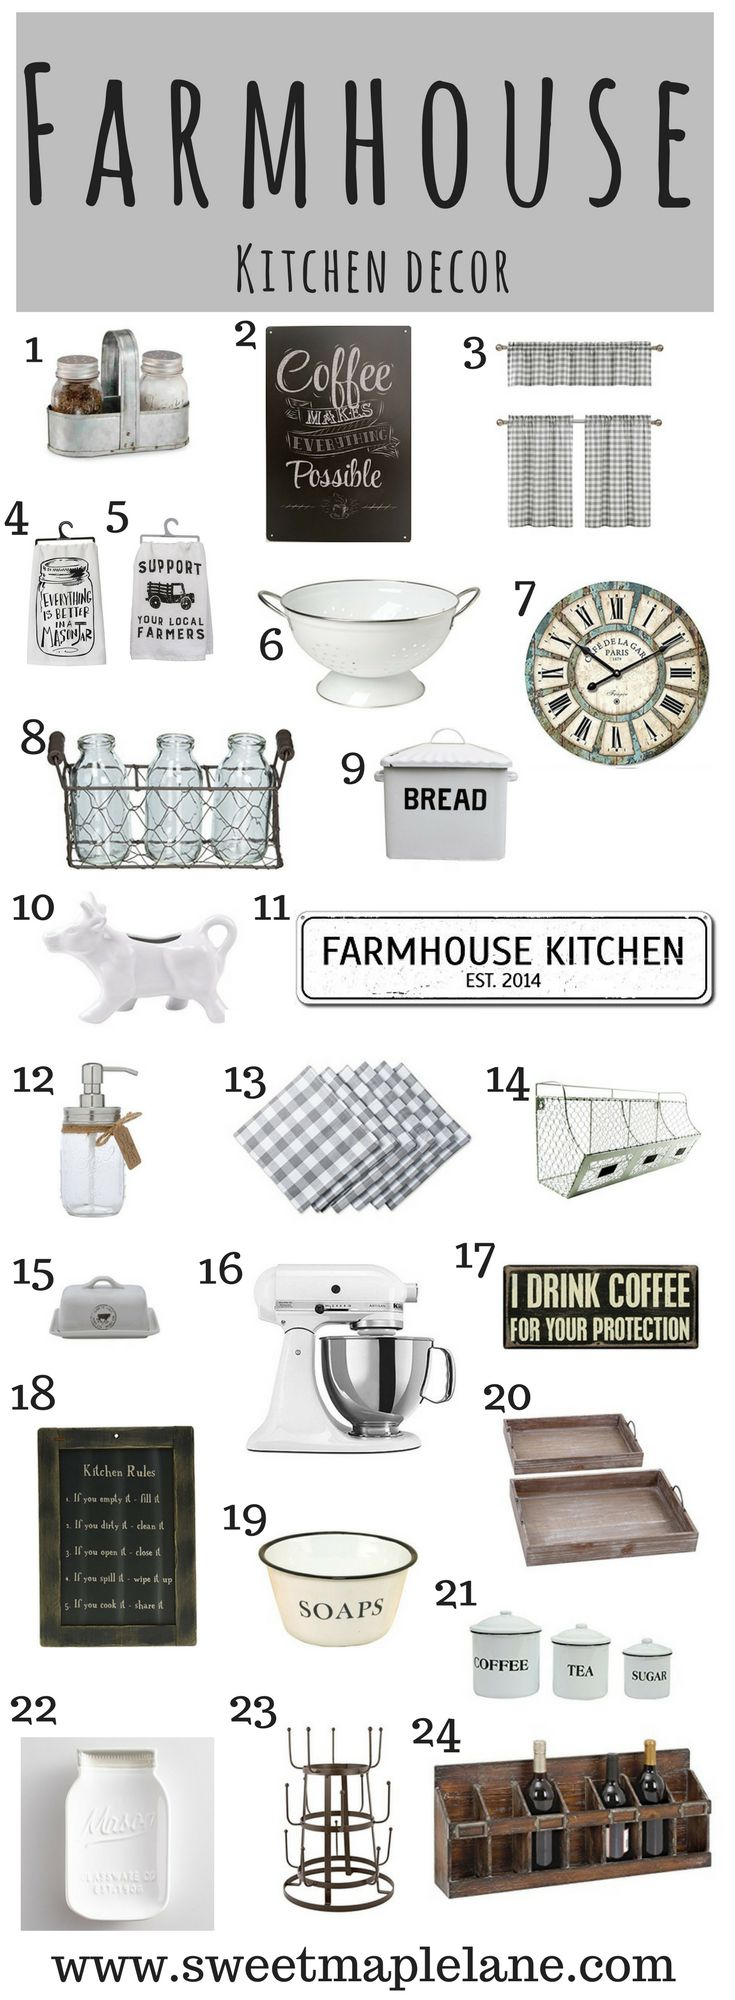 Rustic Neutral Farmhouse Kitchen Décor